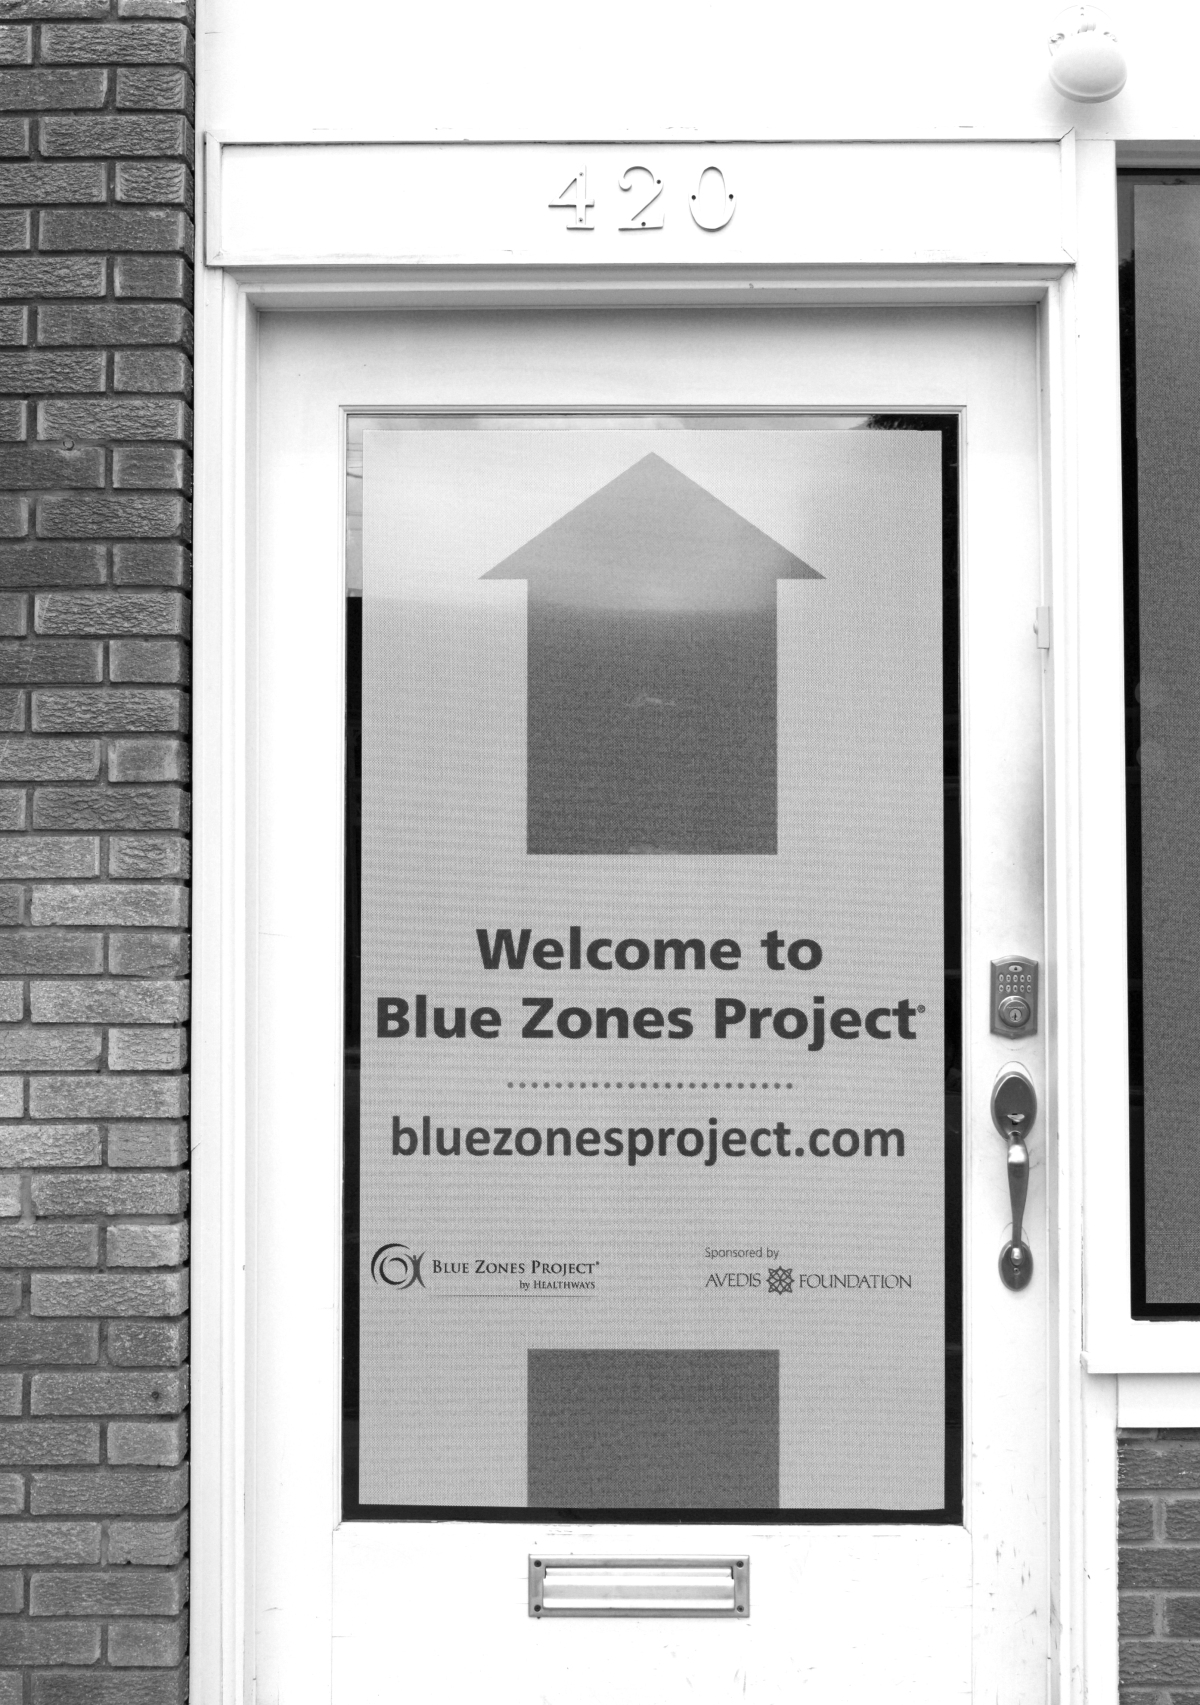 Blue Zones Project continues to betterShawnee